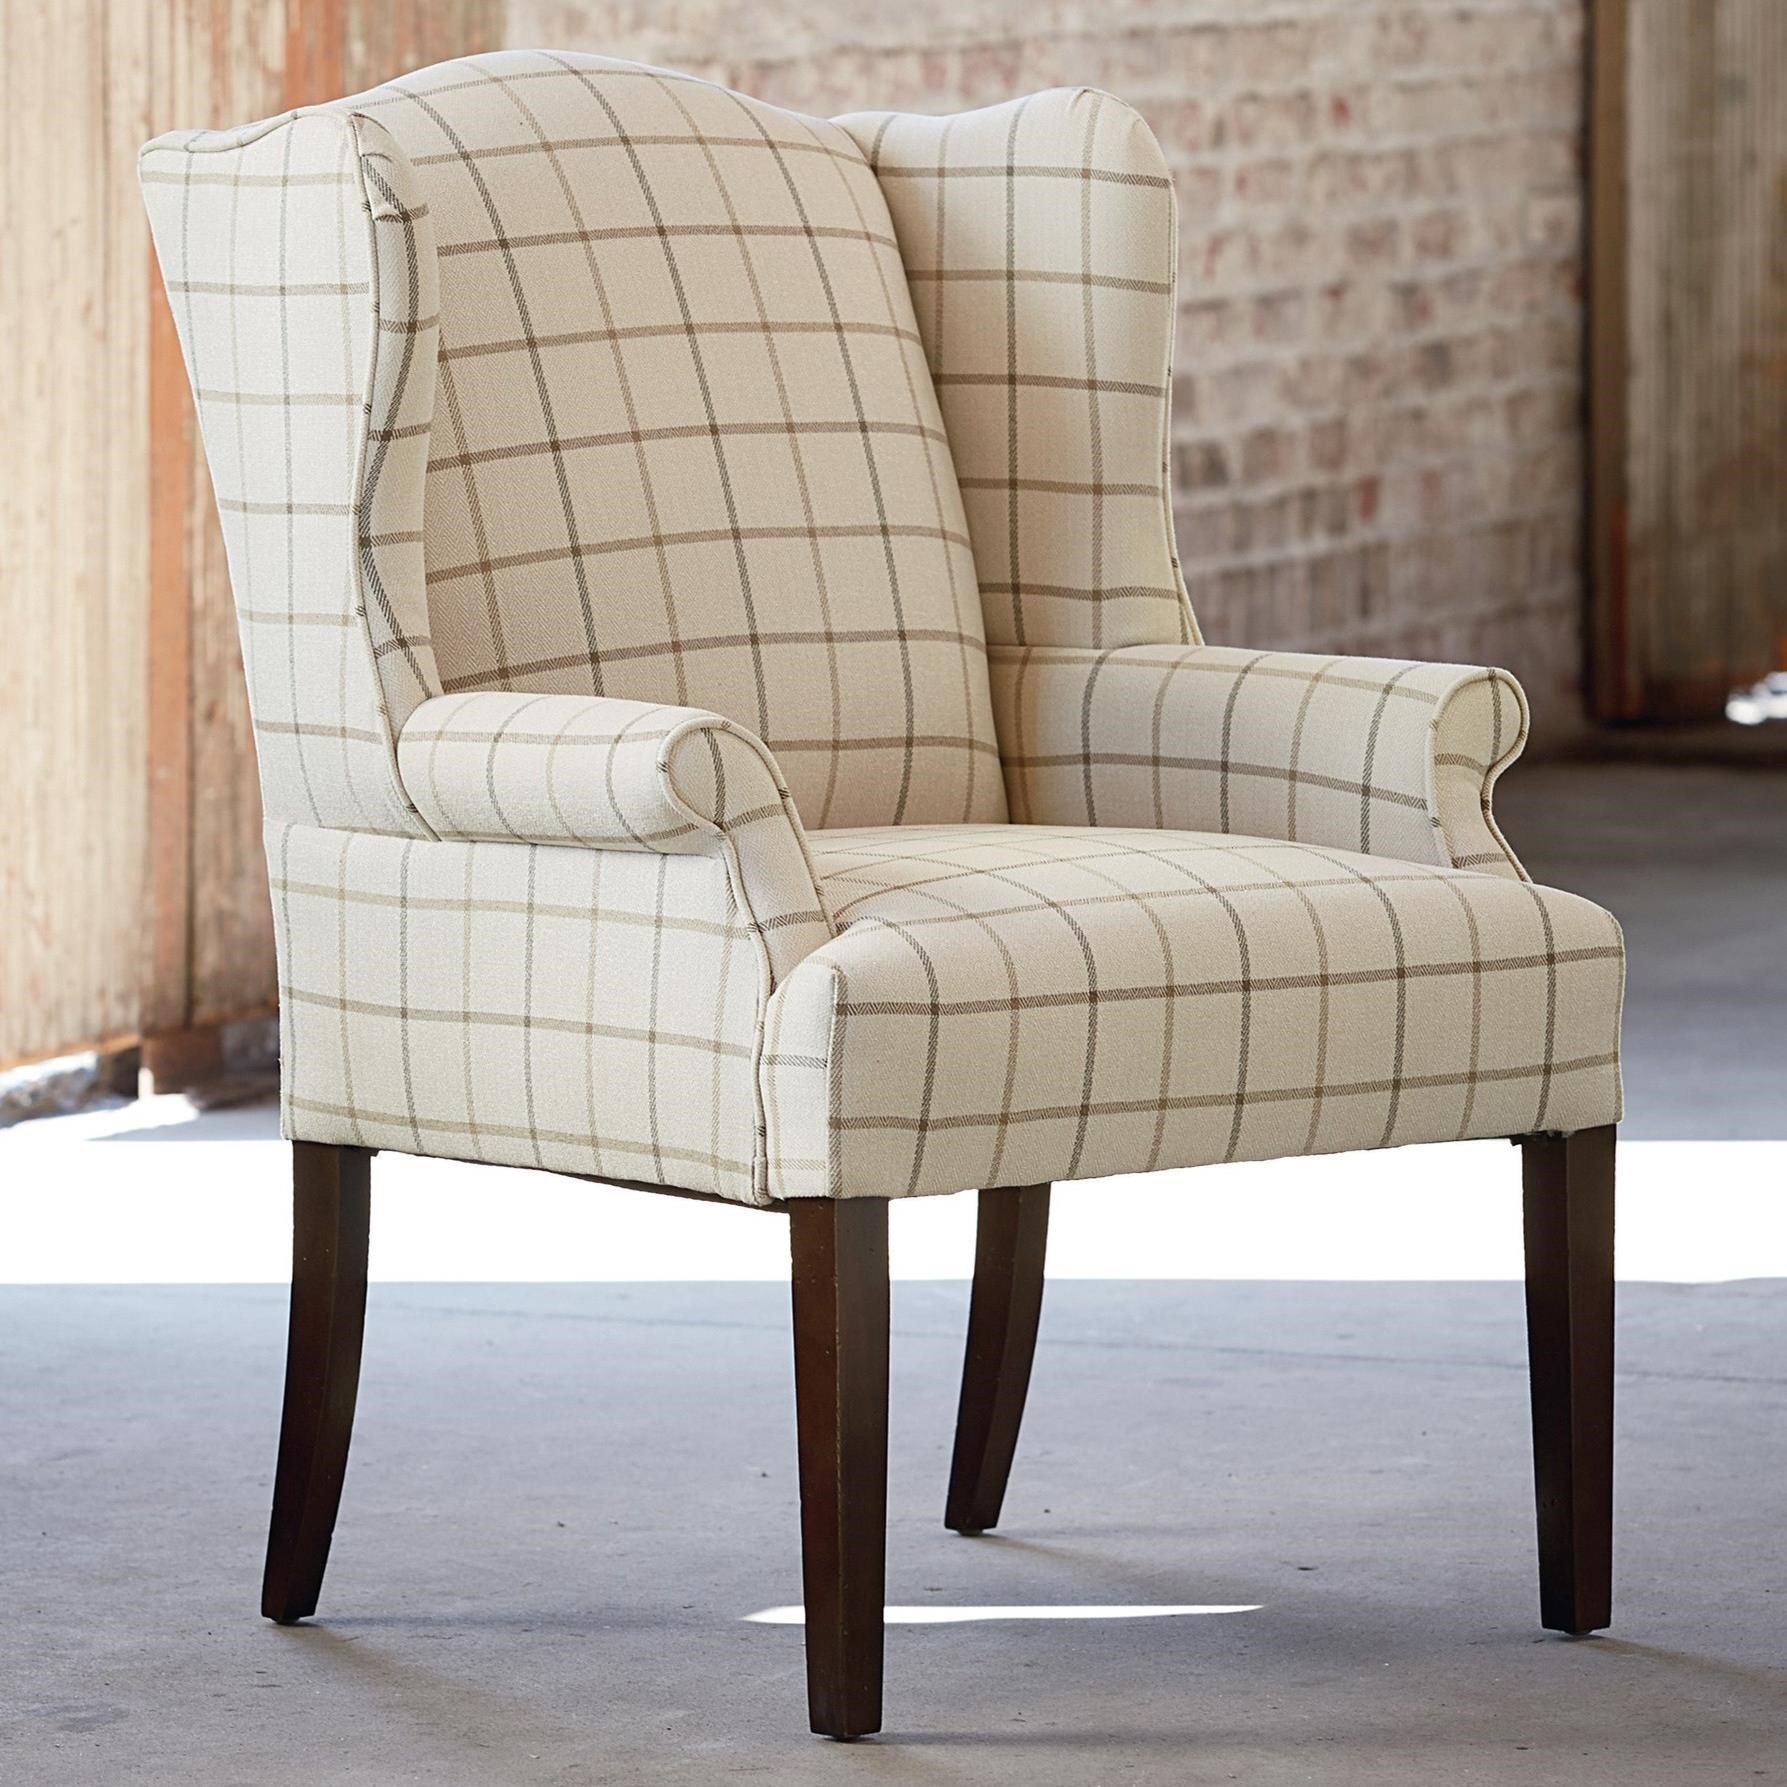 Wingback Dining Room Chairs Bassett Arden 1118 02 Customizable Wing Back Dining Chair Becker